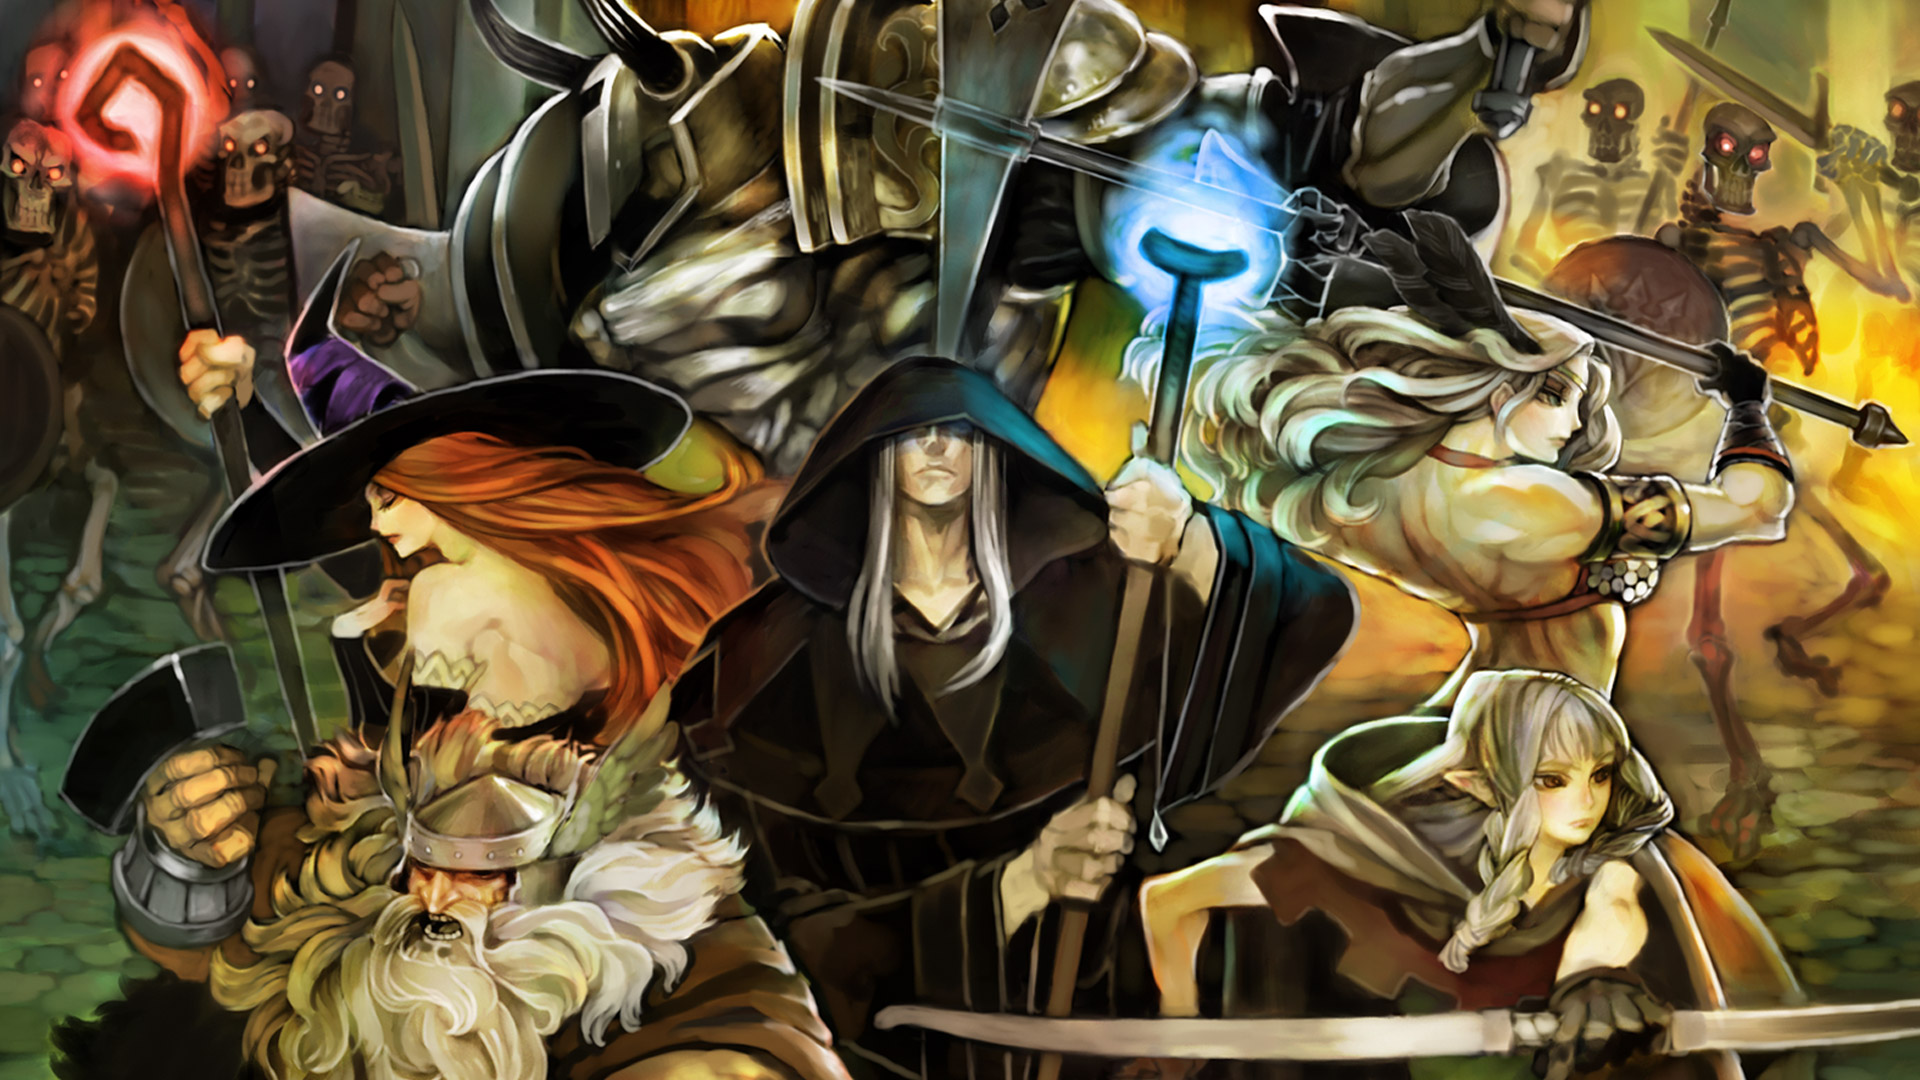 Free Dragon's Crown Wallpaper in 1920x1080